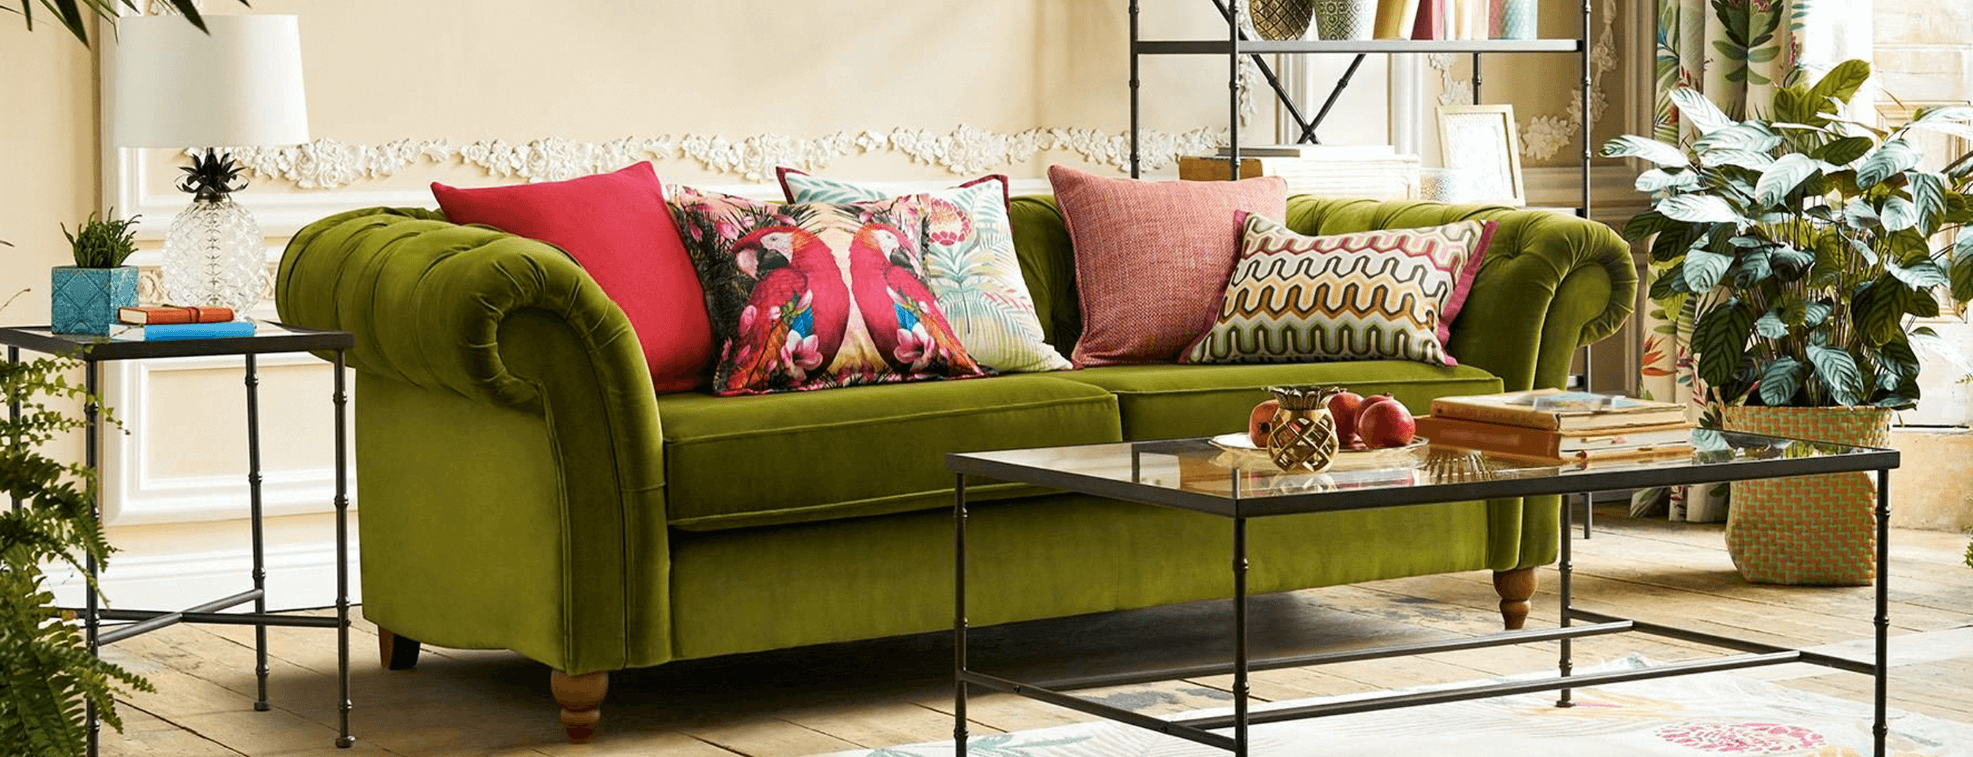 Bohemian interior design with many bright pillows